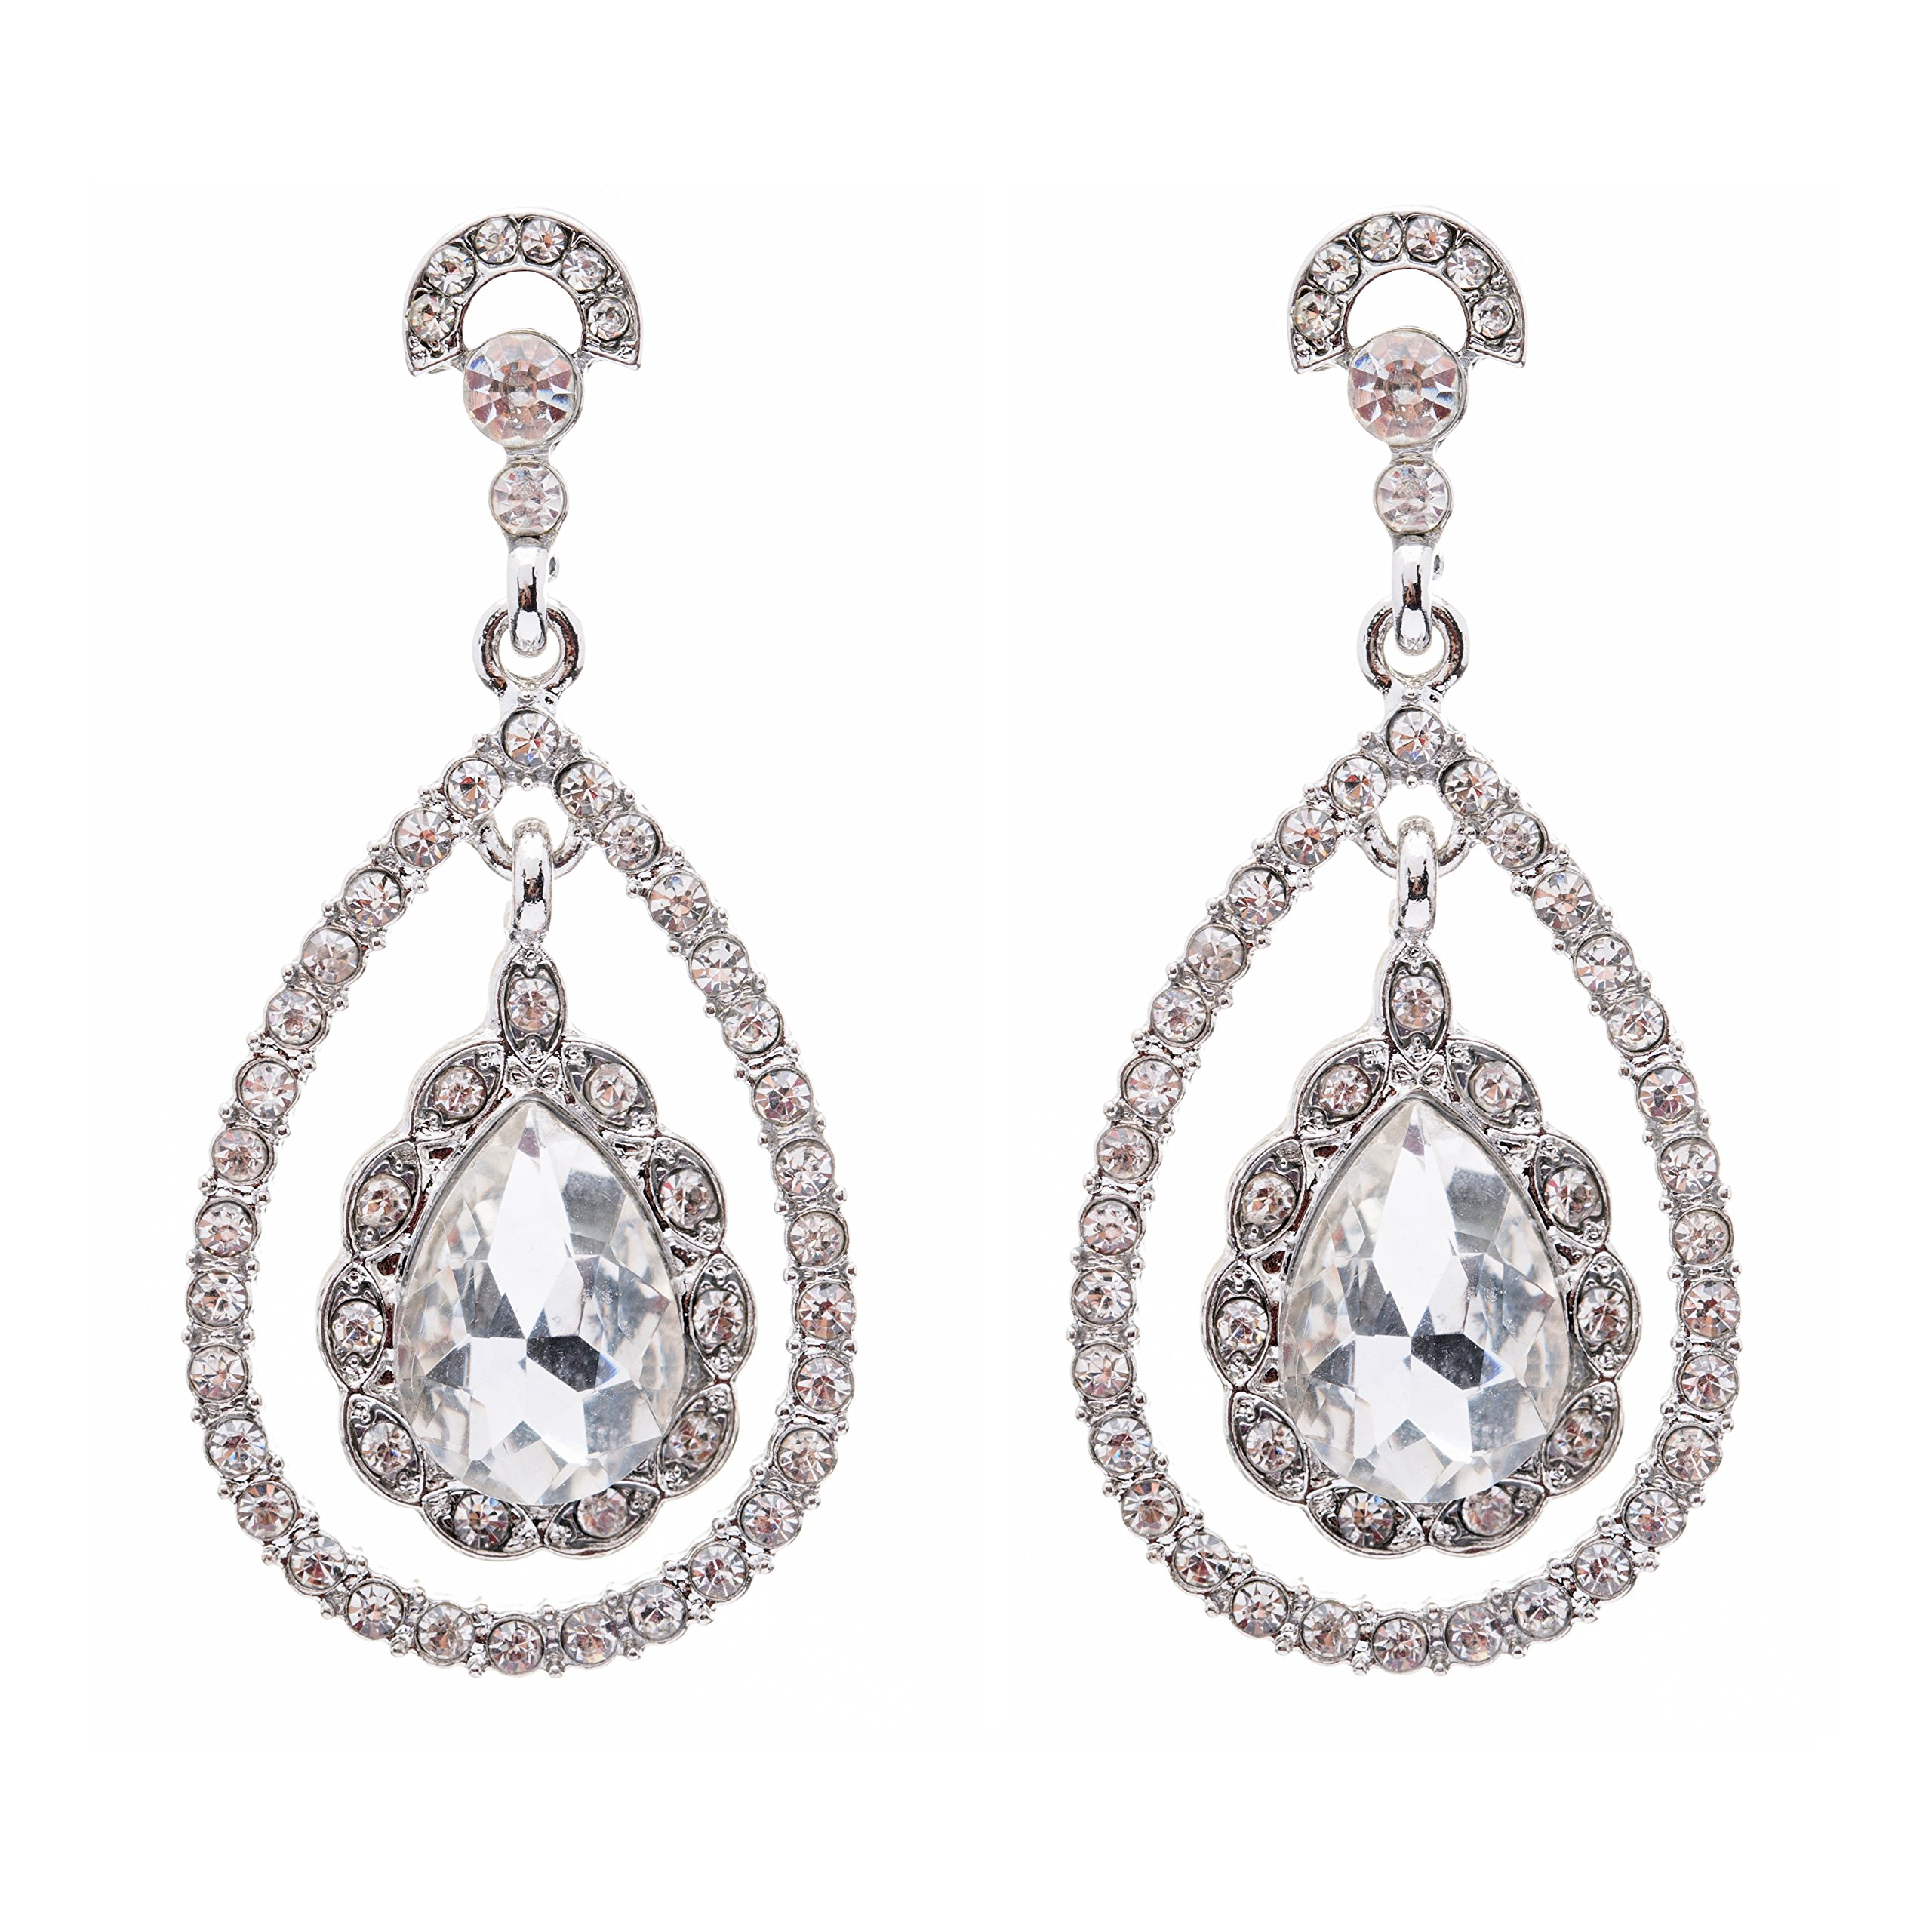 Bridal Wedding Jewelry Crystal Rhinestone Dazzle Elegant Dangle Drop Earrings SV by Accessoriesforever (Image #1)